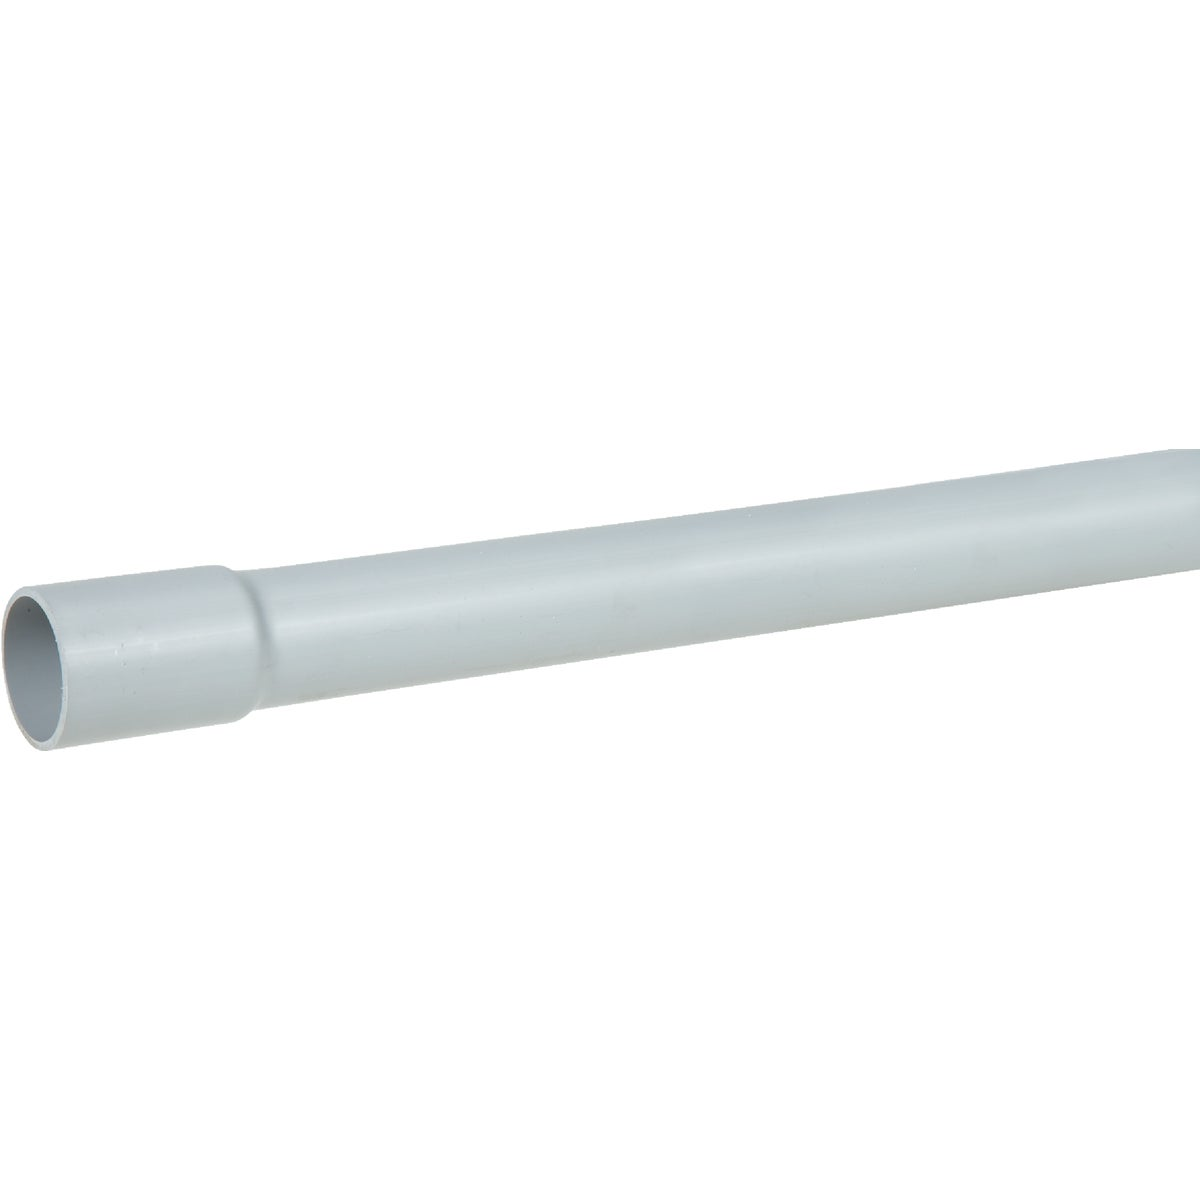 "2"" SCH80 10' CONDUIT - 49411-010 by Prime Conduit"